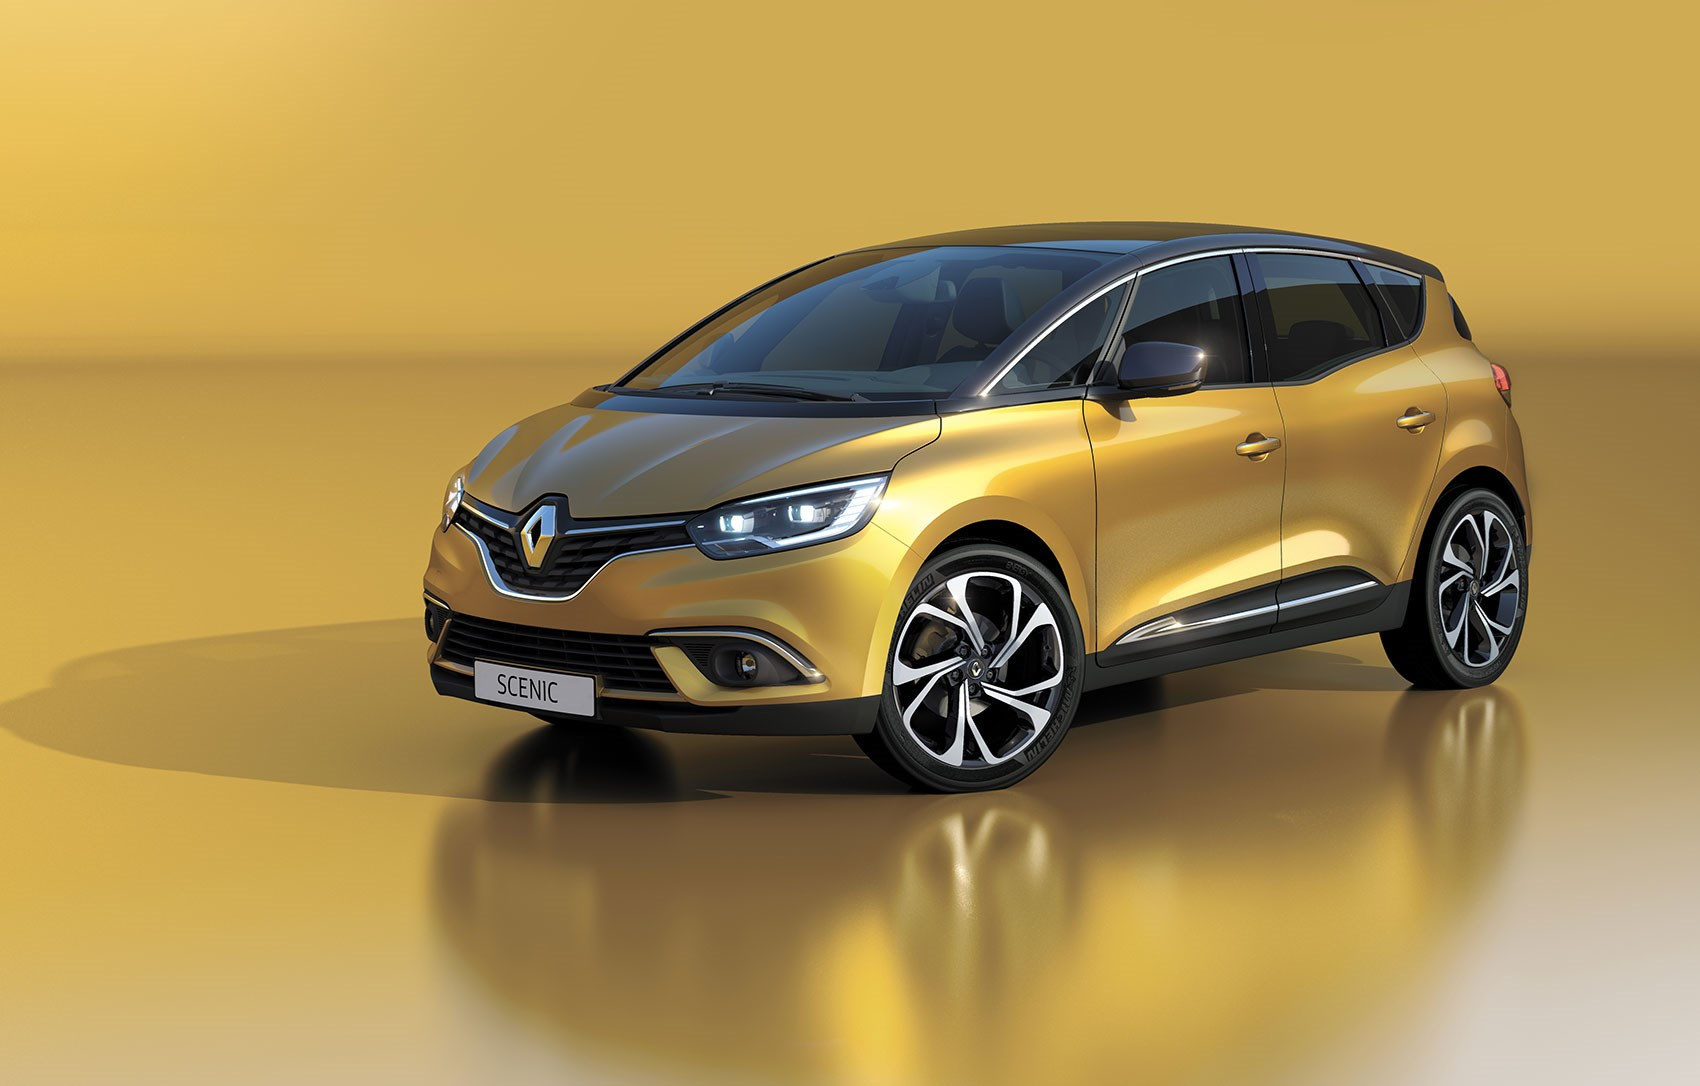 the new 2016 renault scenic is here have they reinvented